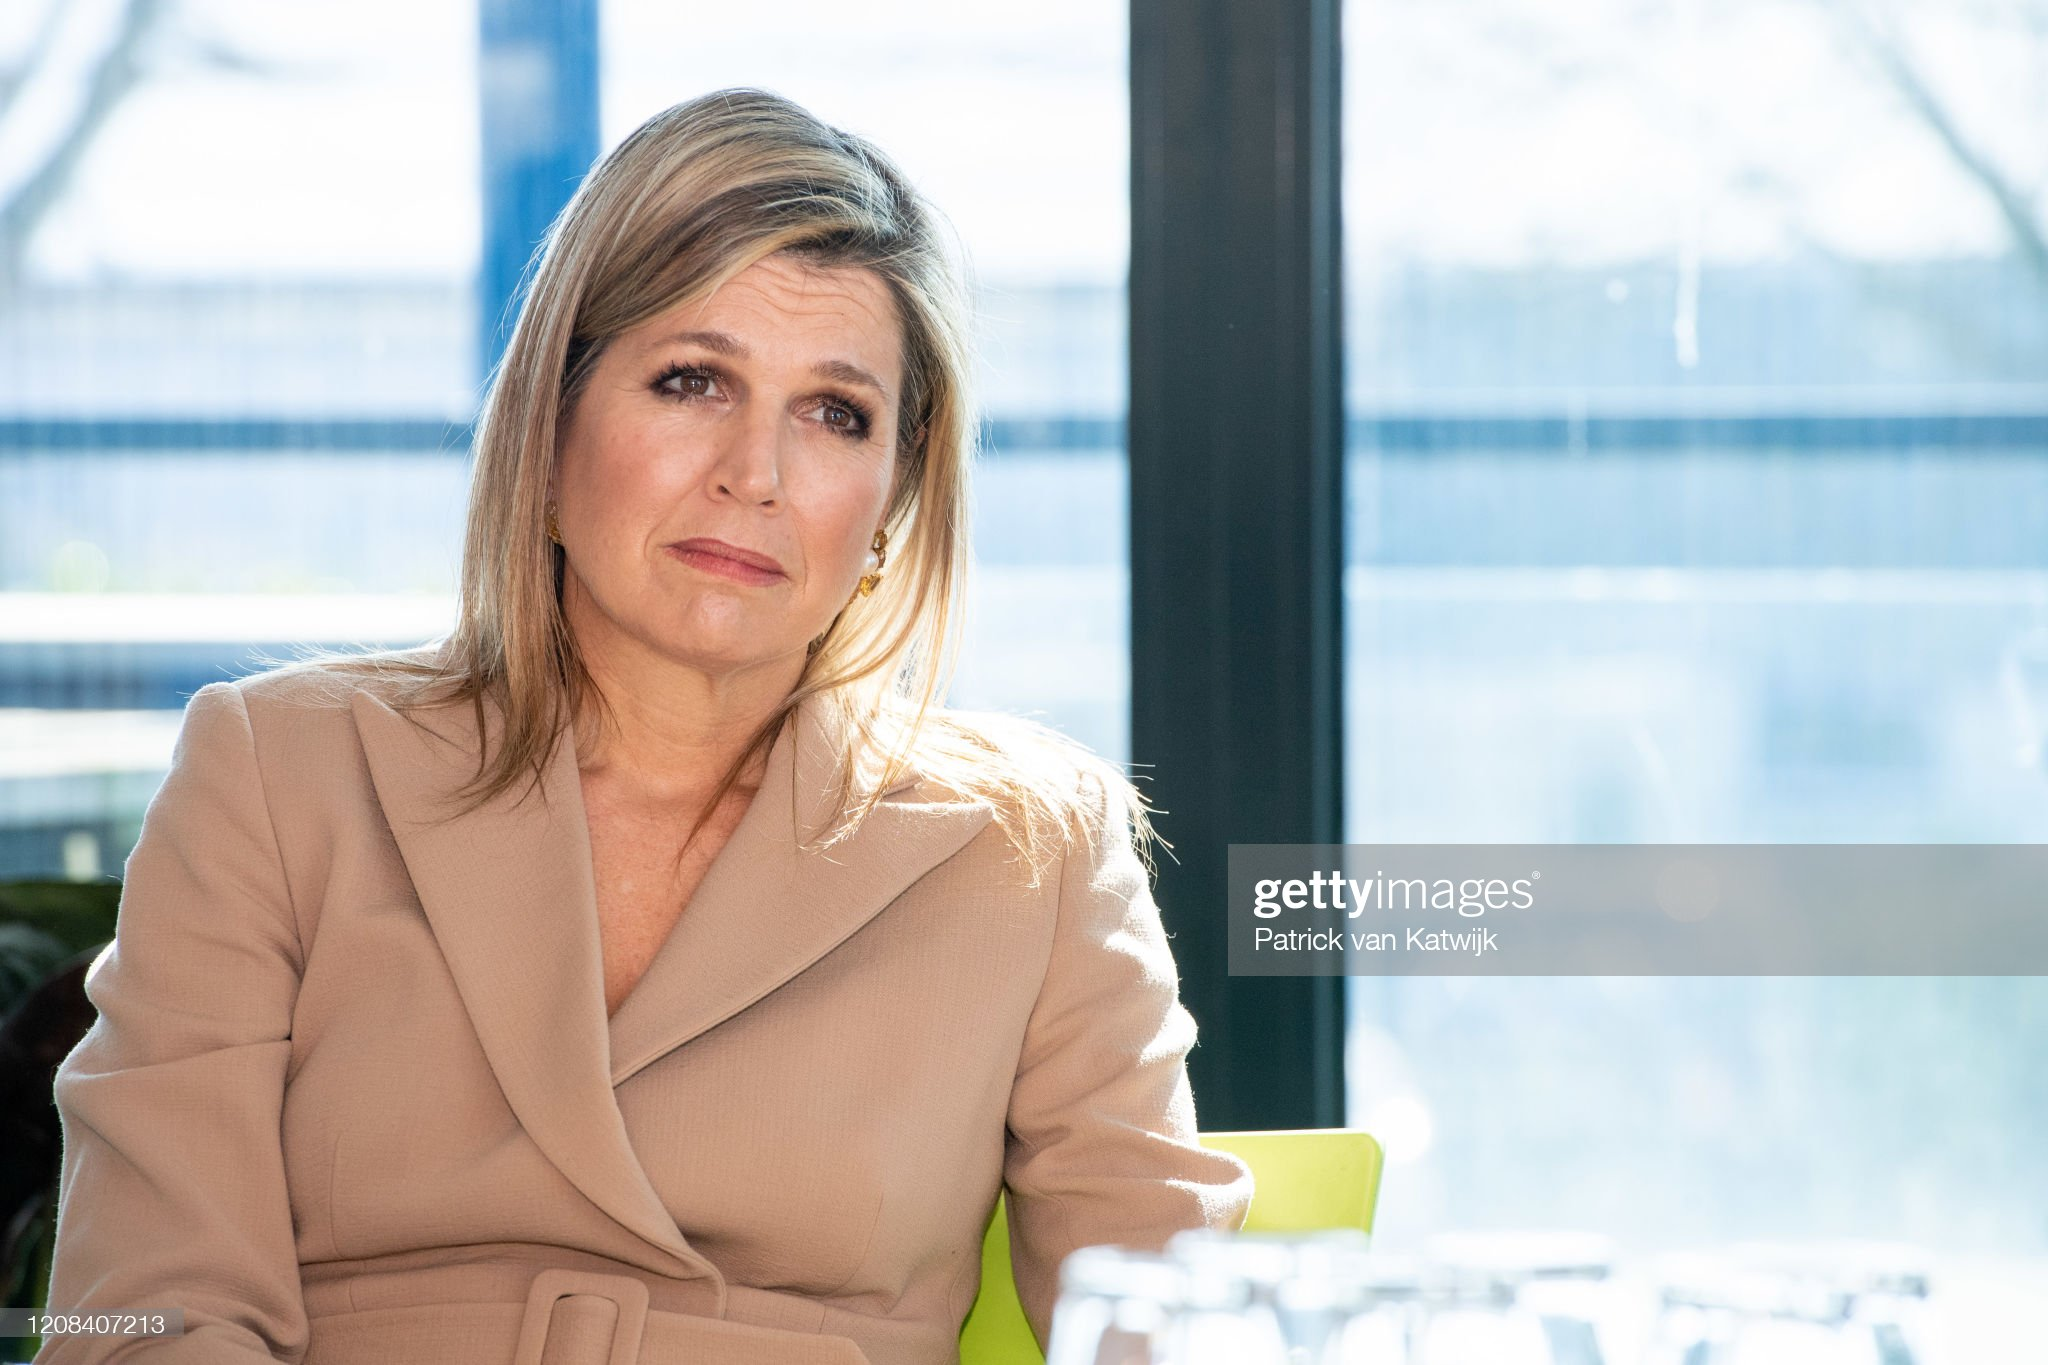 https://media.gettyimages.com/photos/queen-maxima-of-the-netherlands-visits-zuidbaak-floriculture-company-picture-id1208407213?s=2048x2048